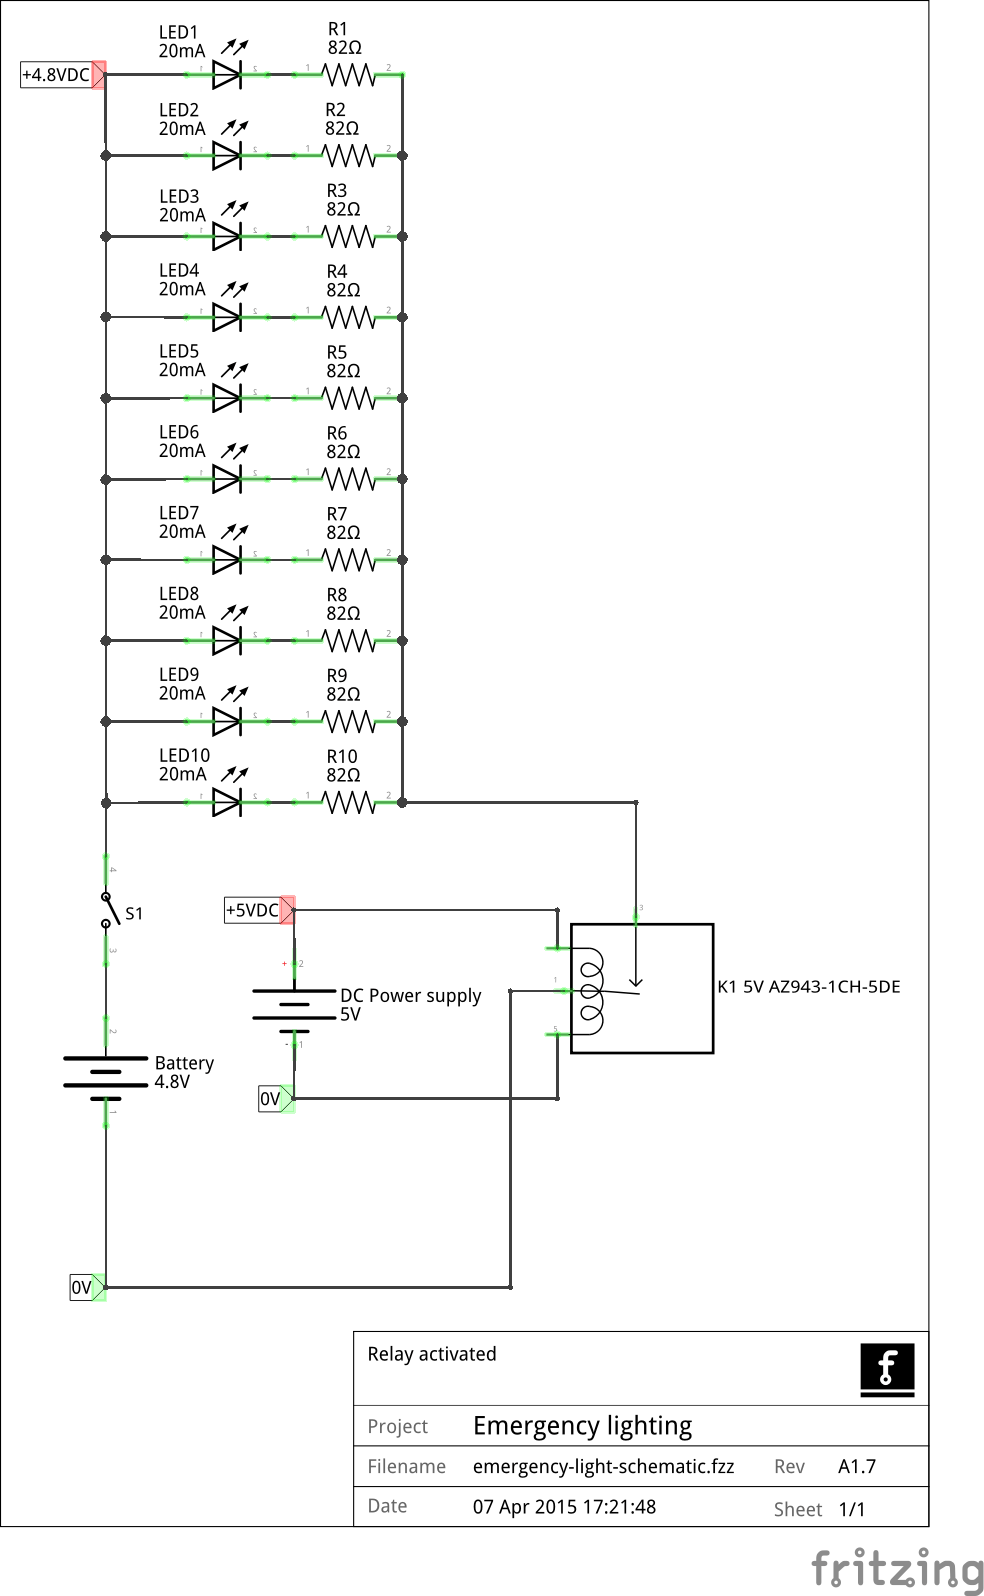 wiring diagram symbol for relay pioneer car stereo led emergency lighting - activated electrical engineering stack exchange